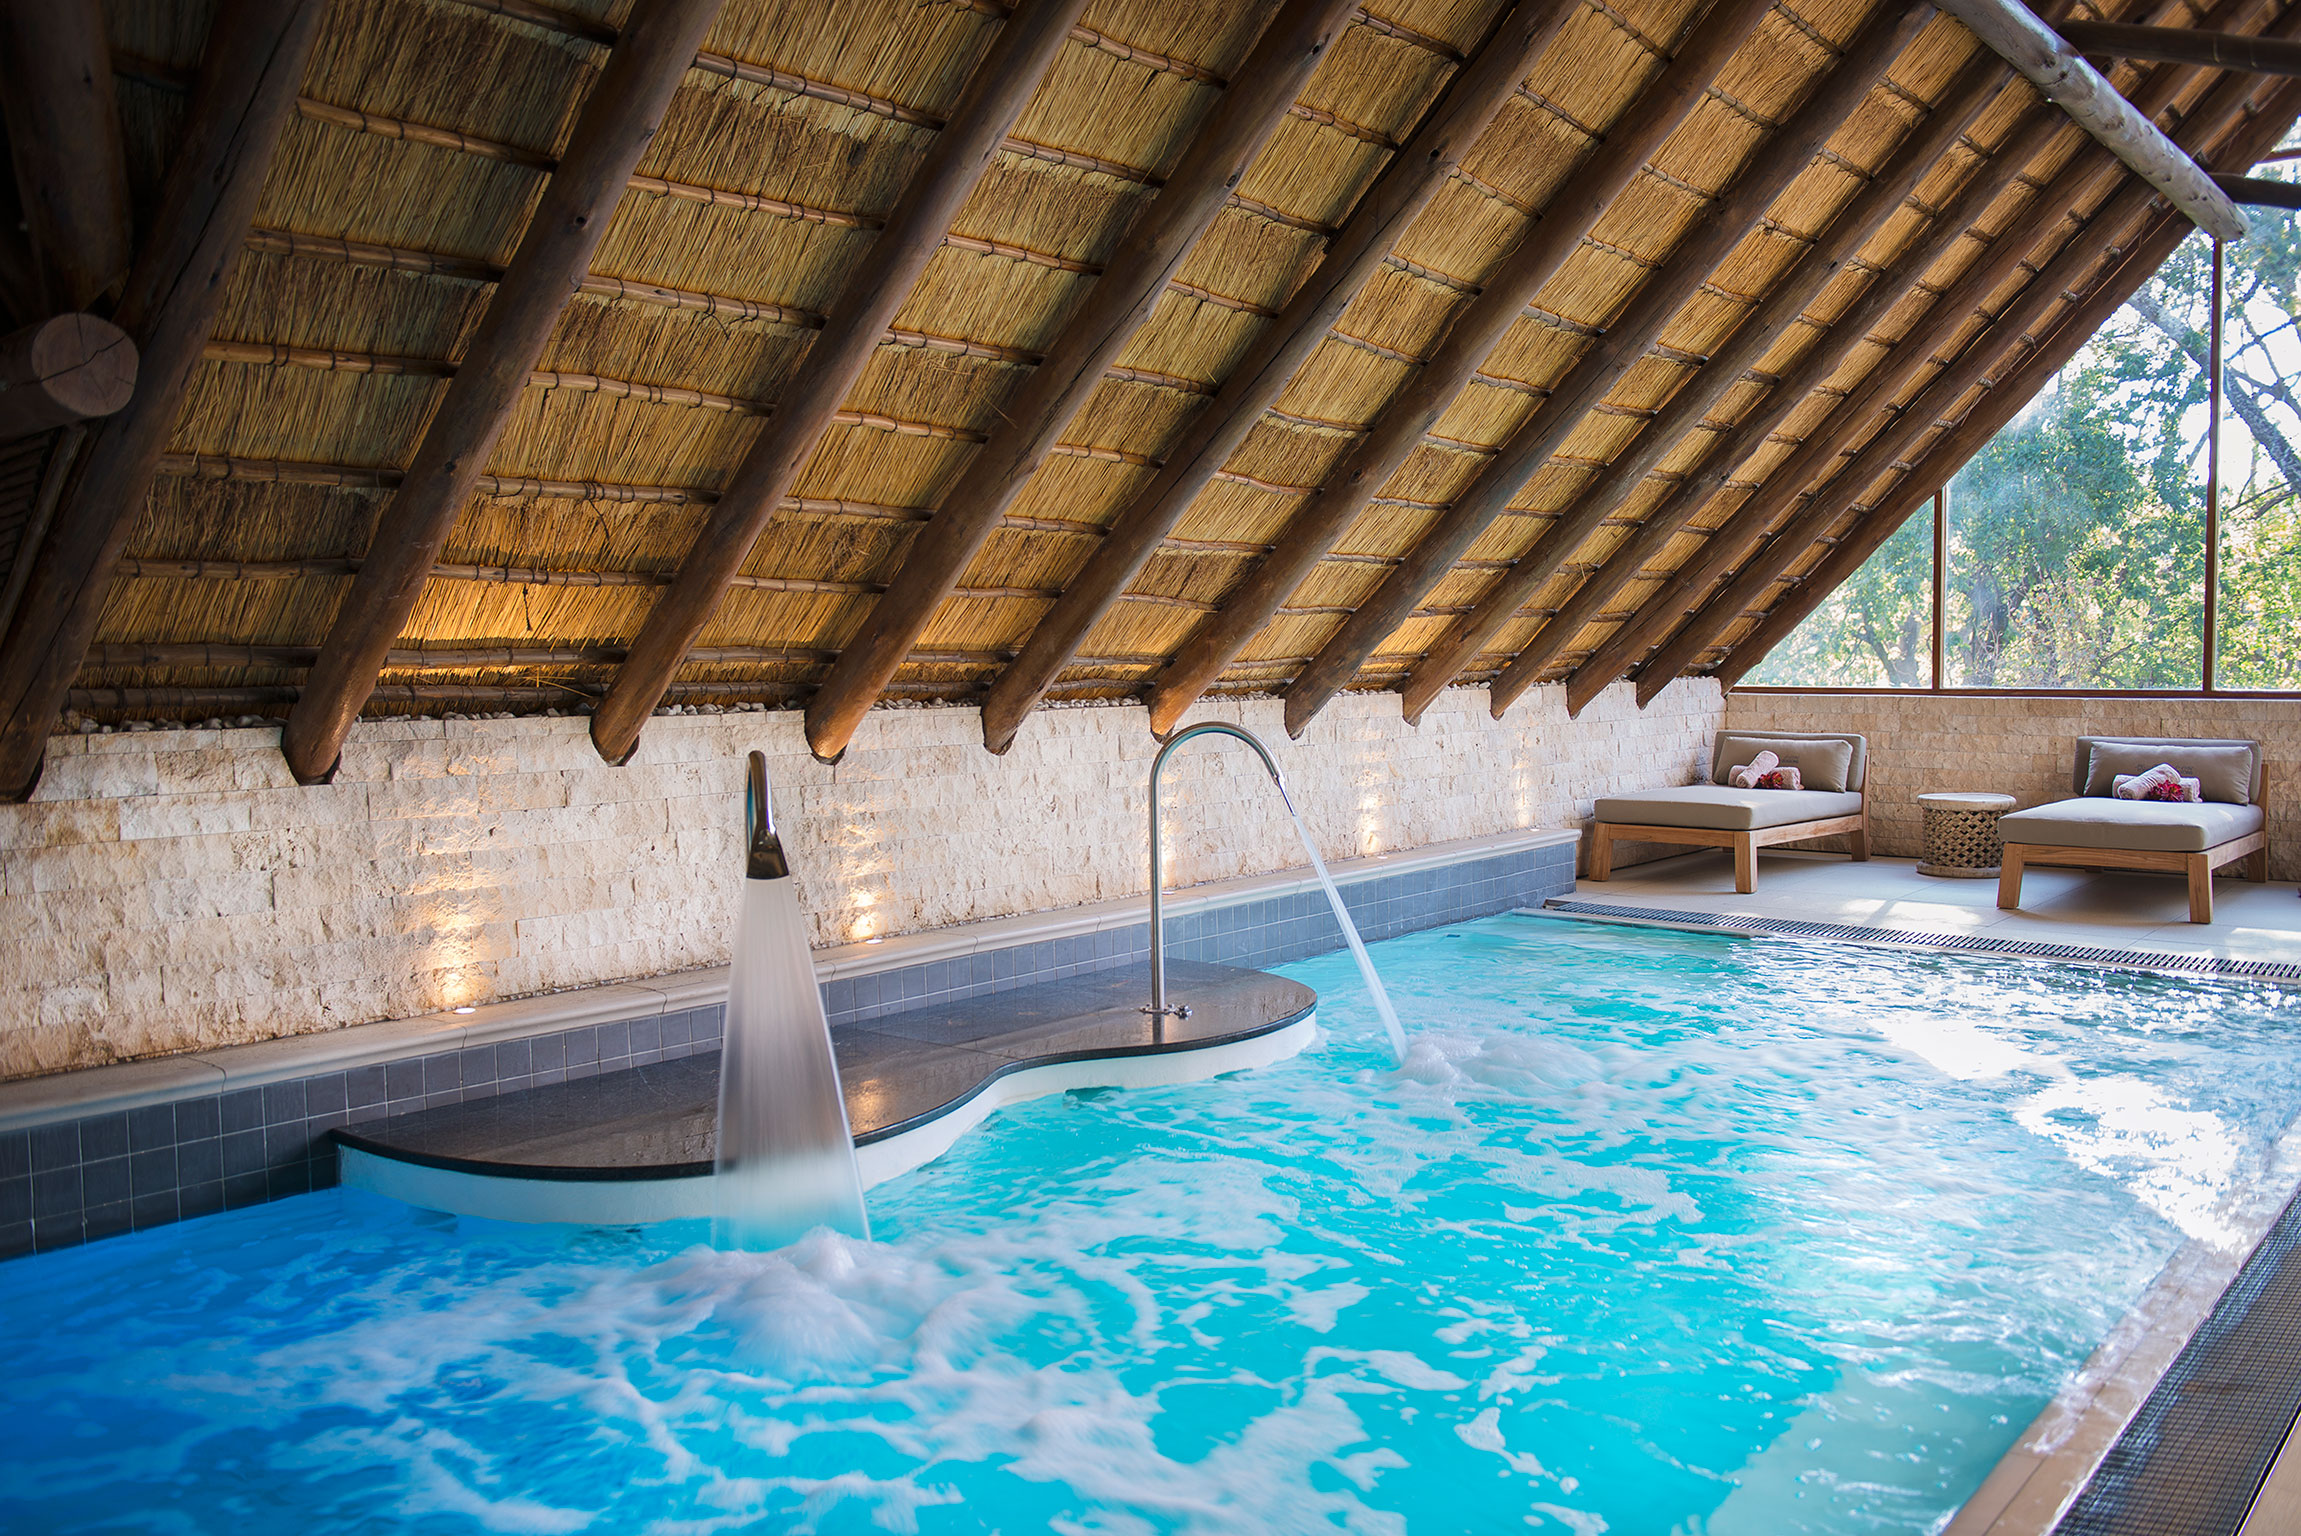 Our award-winning spa treatment rooms overlook the dam